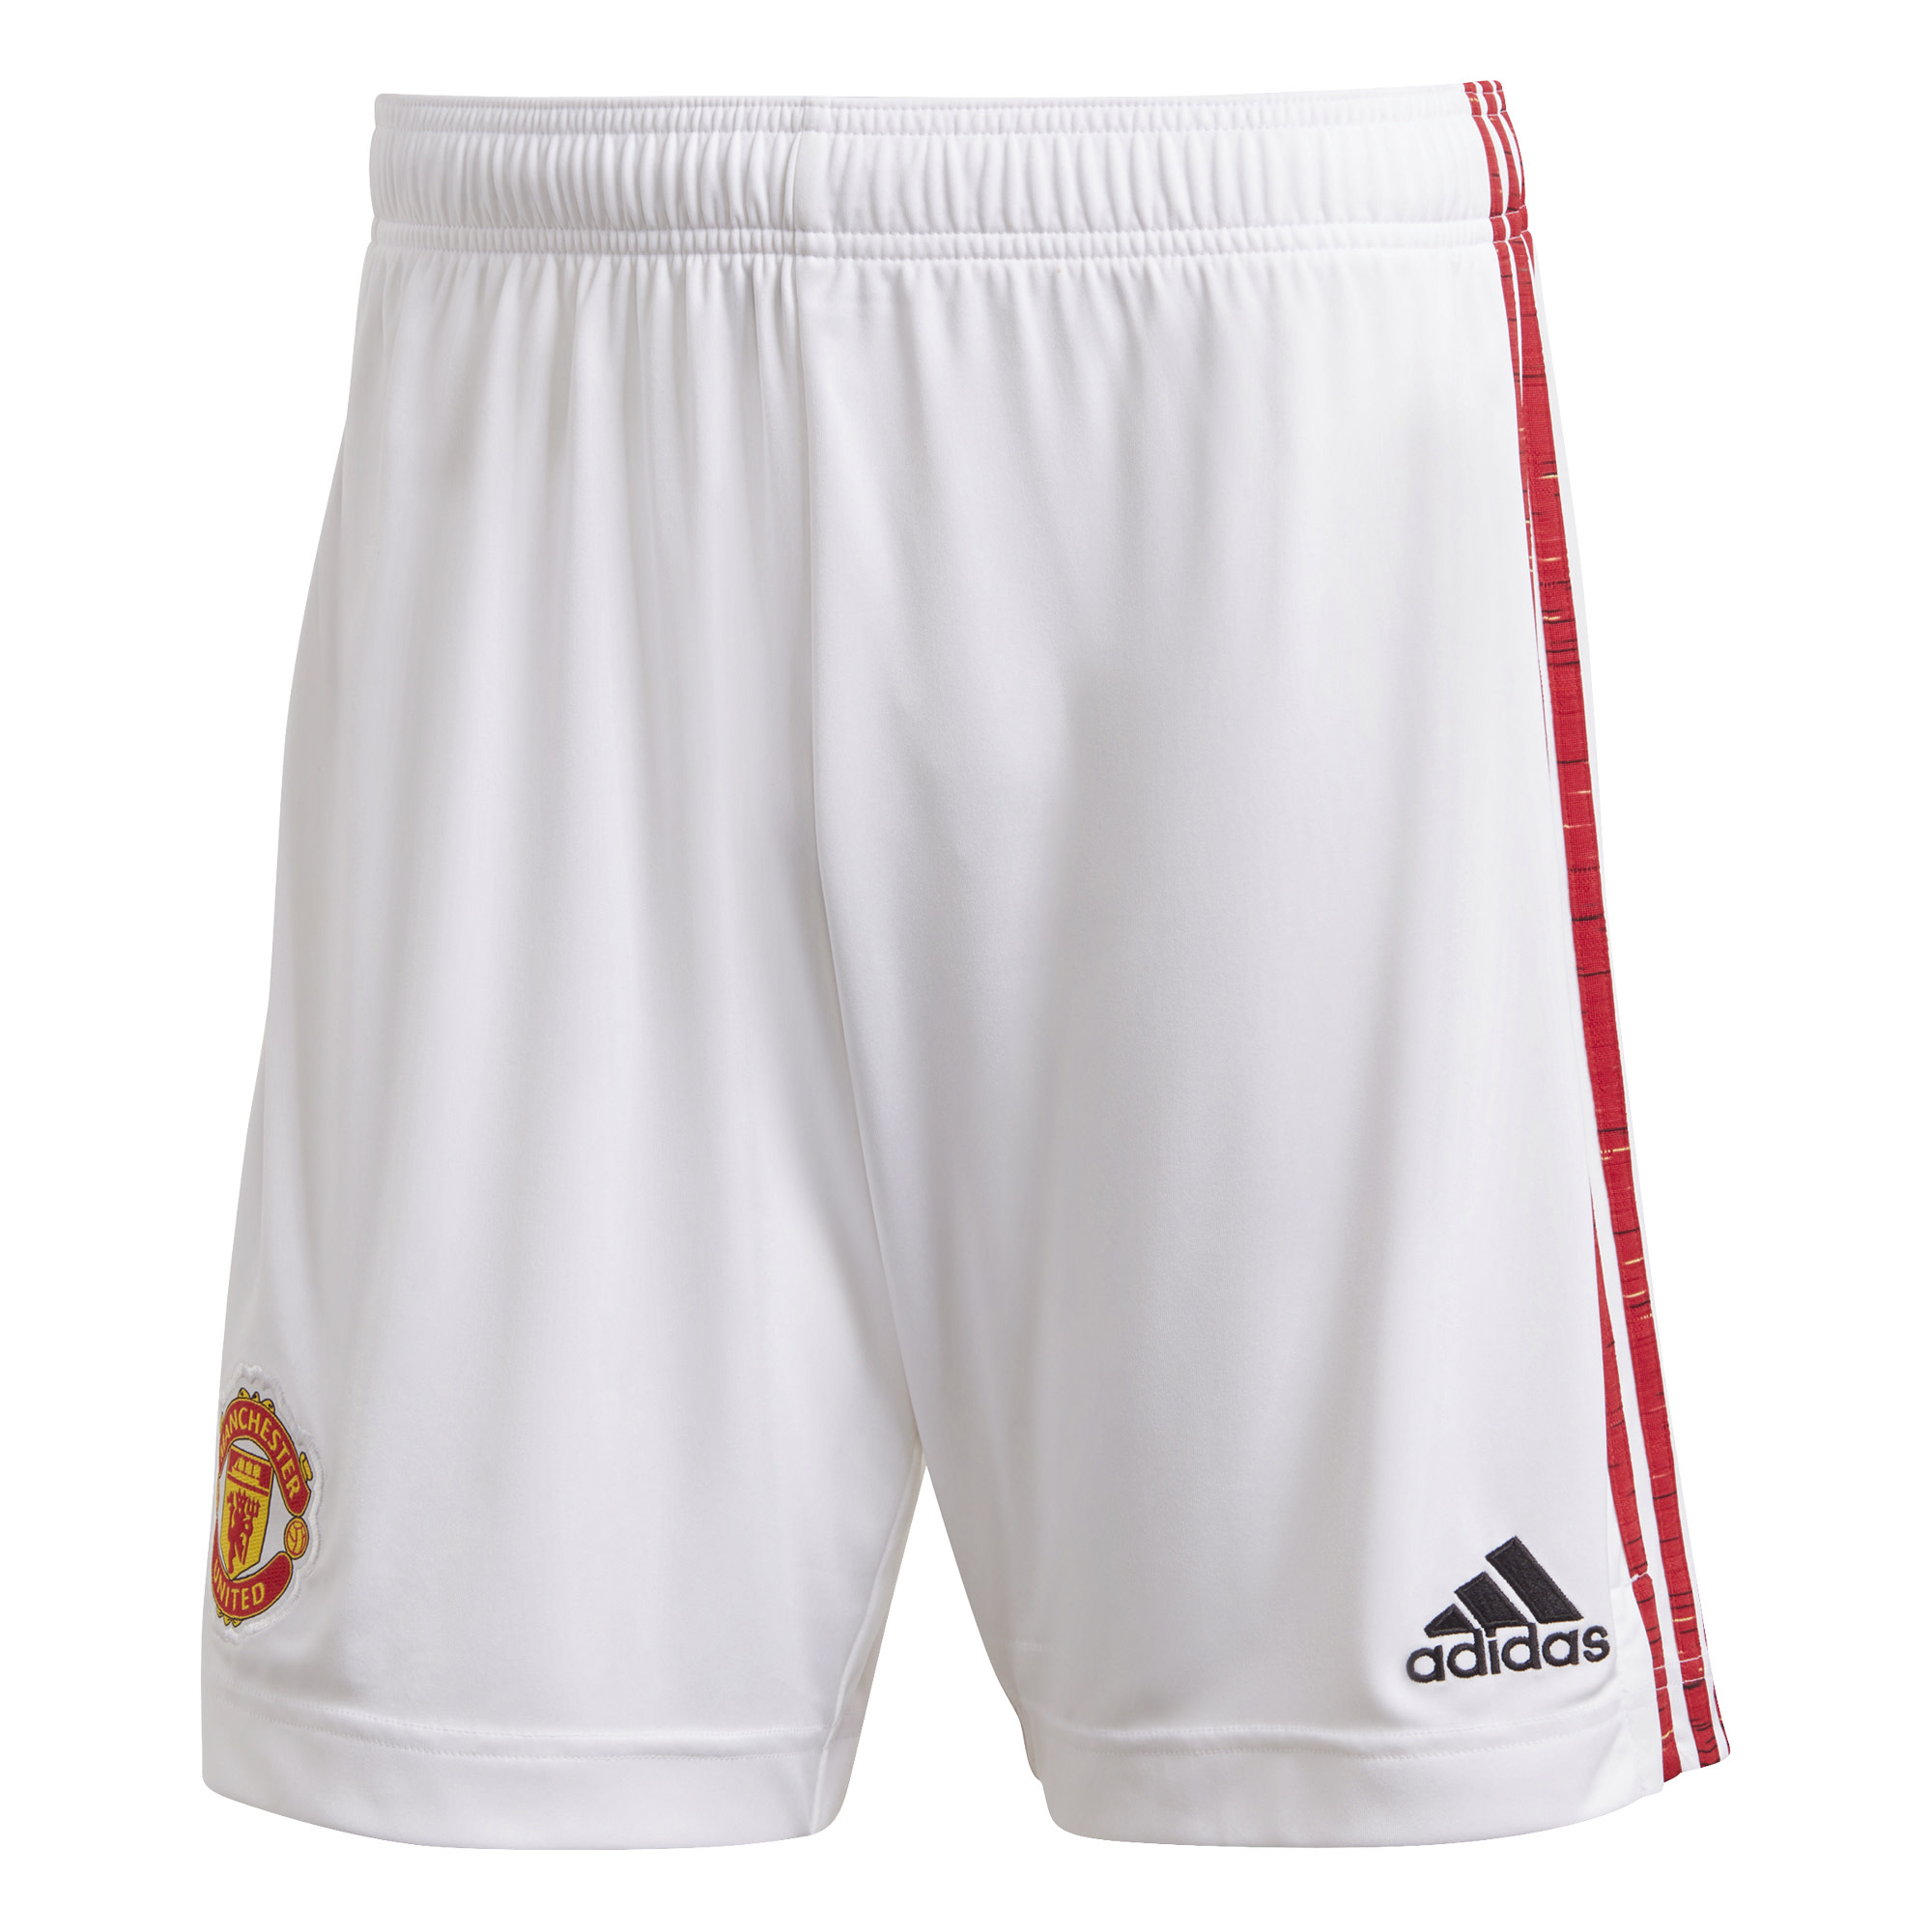 Adidas ADIDAS Manchester United Home Short '20-'21